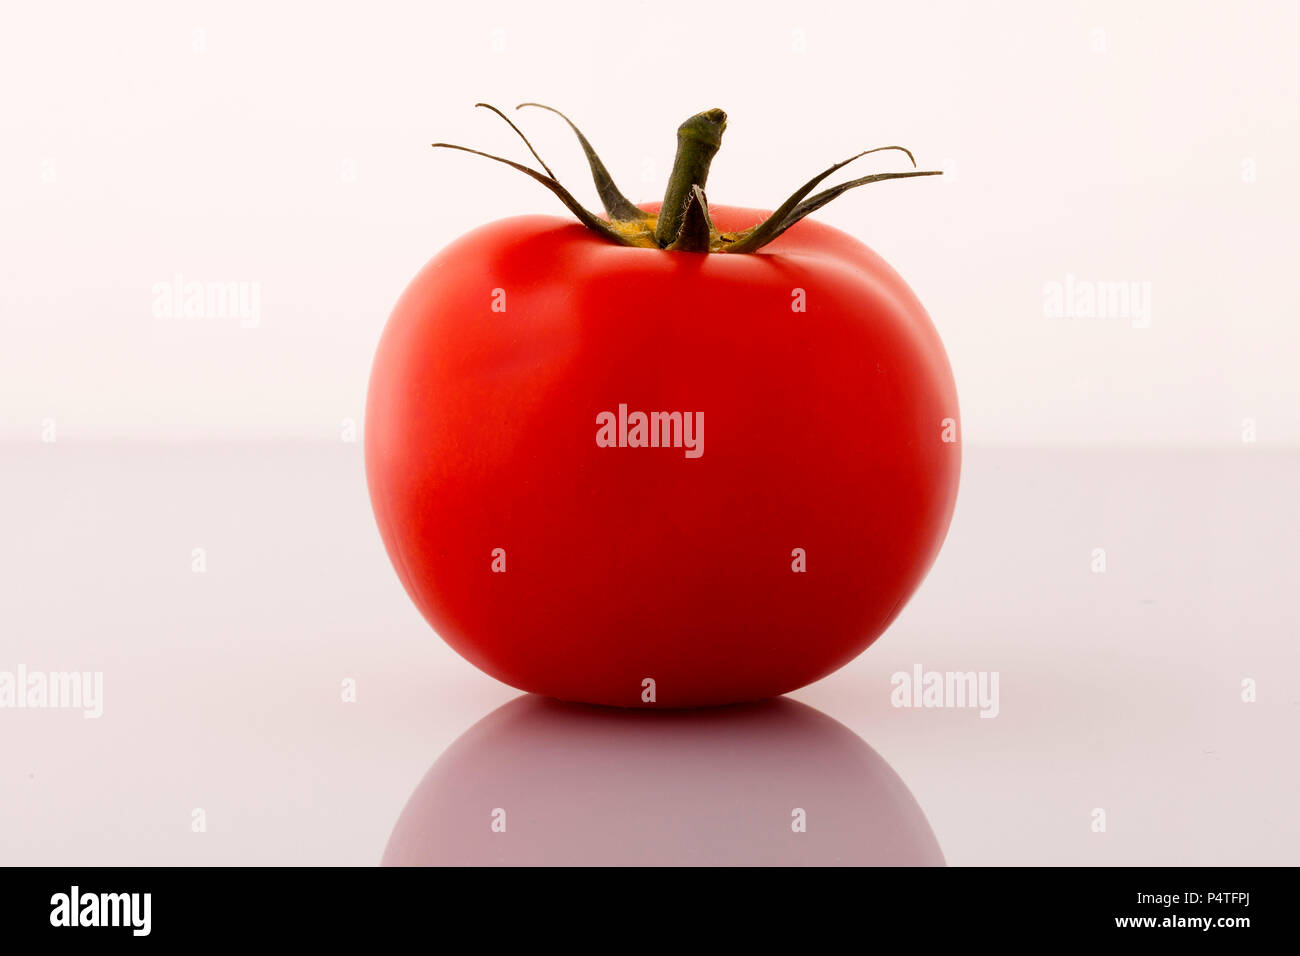 Tomate, Tomate Photo Stock